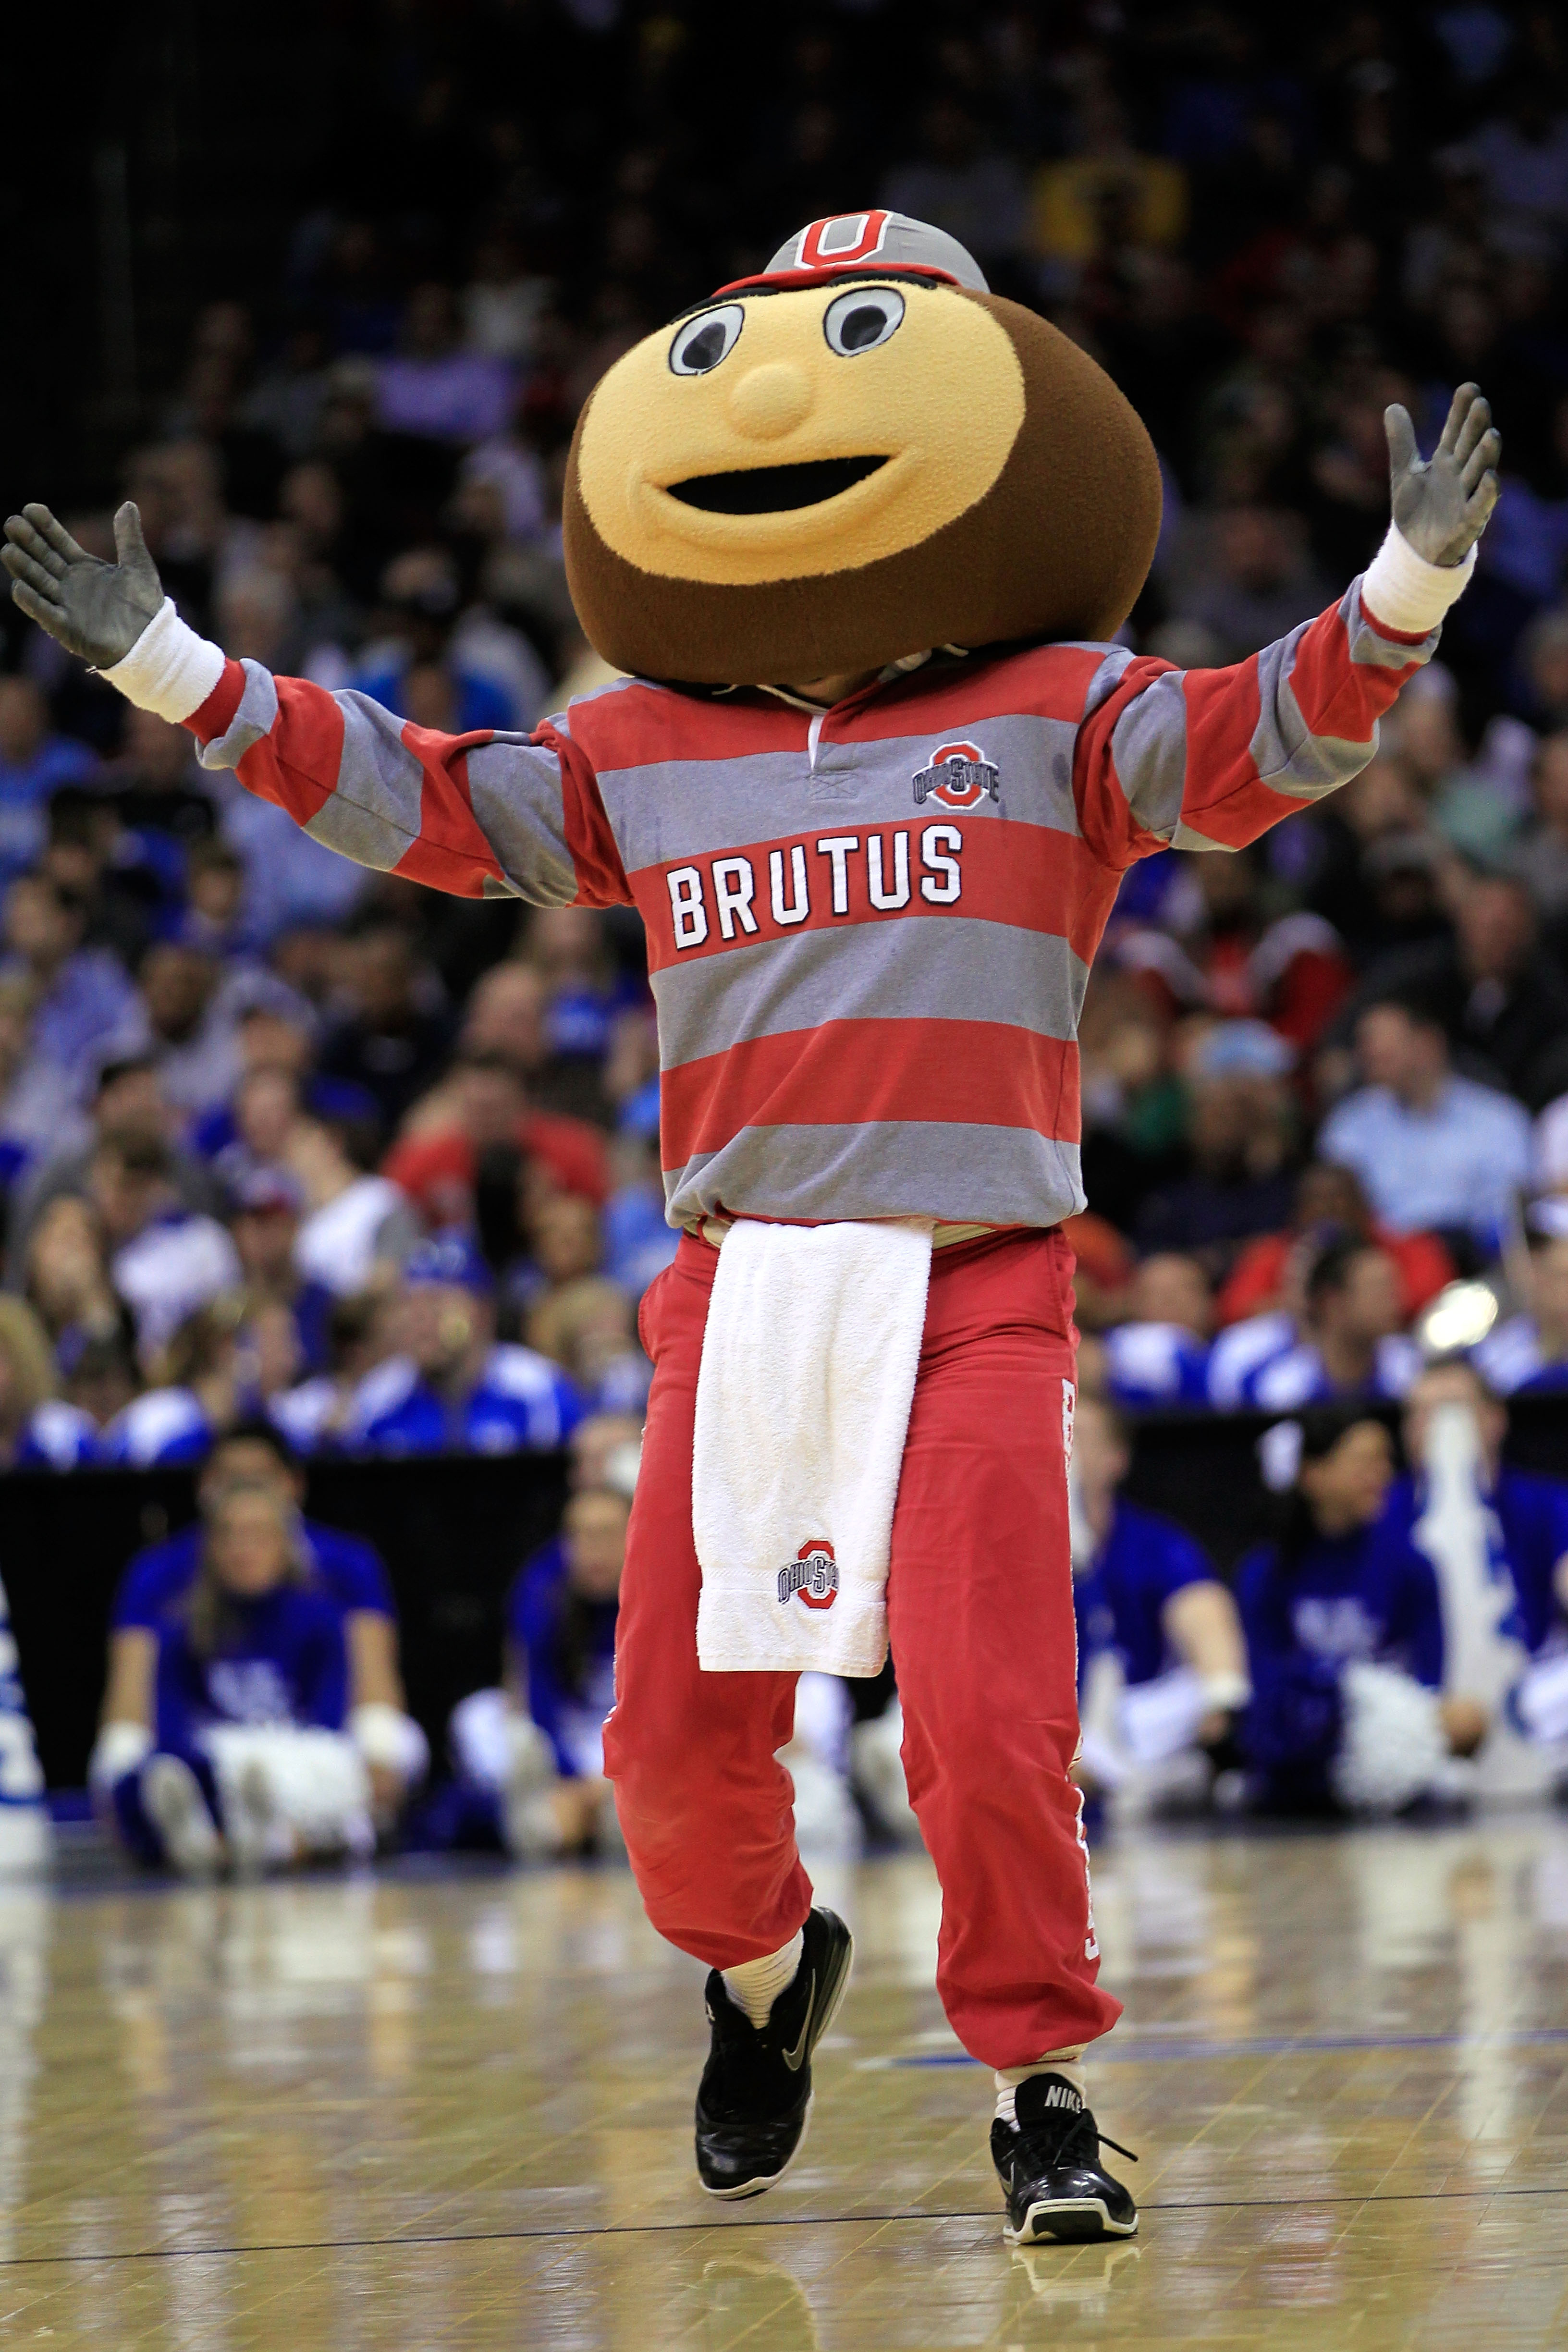 NEWARK, NJ - MARCH 25: Brutus the Ohio State Buckeyes mascot walks on the court during the game against the Kentucky Wildcats in the east regional semifinal of the 2011 NCAA Men's Basketball Tournament at the Prudential Center on March 25, 2011 in Newark,